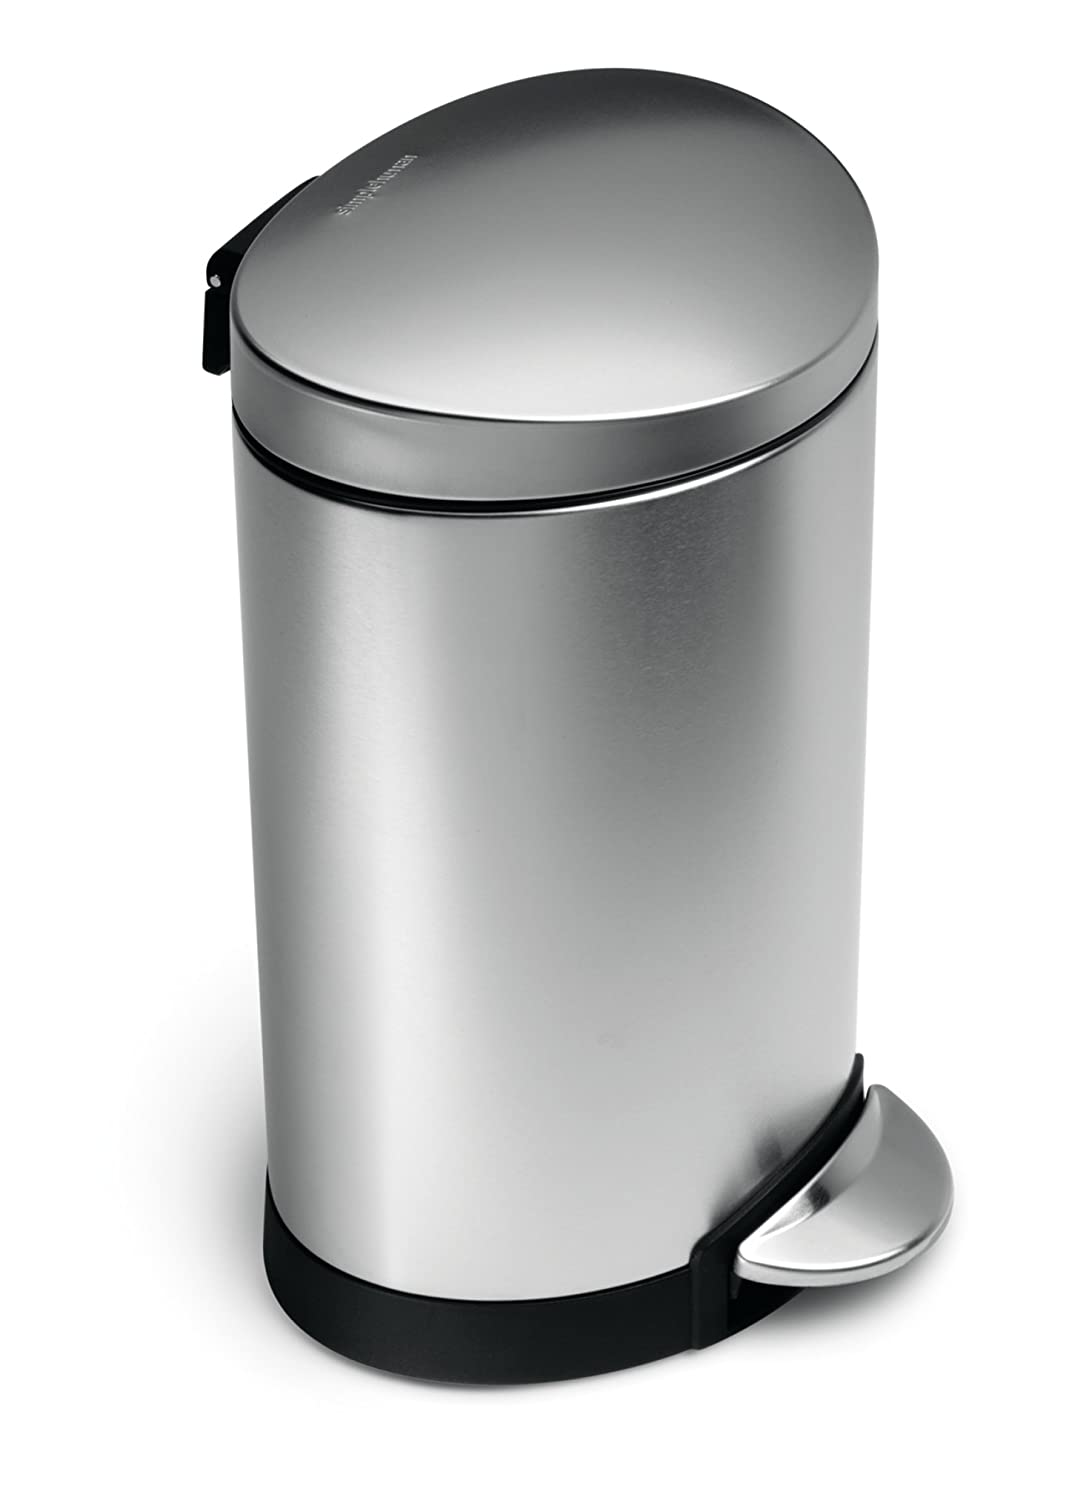 stainless steel kitchen trash can garbage waste bin pedal lid step operated new ebay. Black Bedroom Furniture Sets. Home Design Ideas